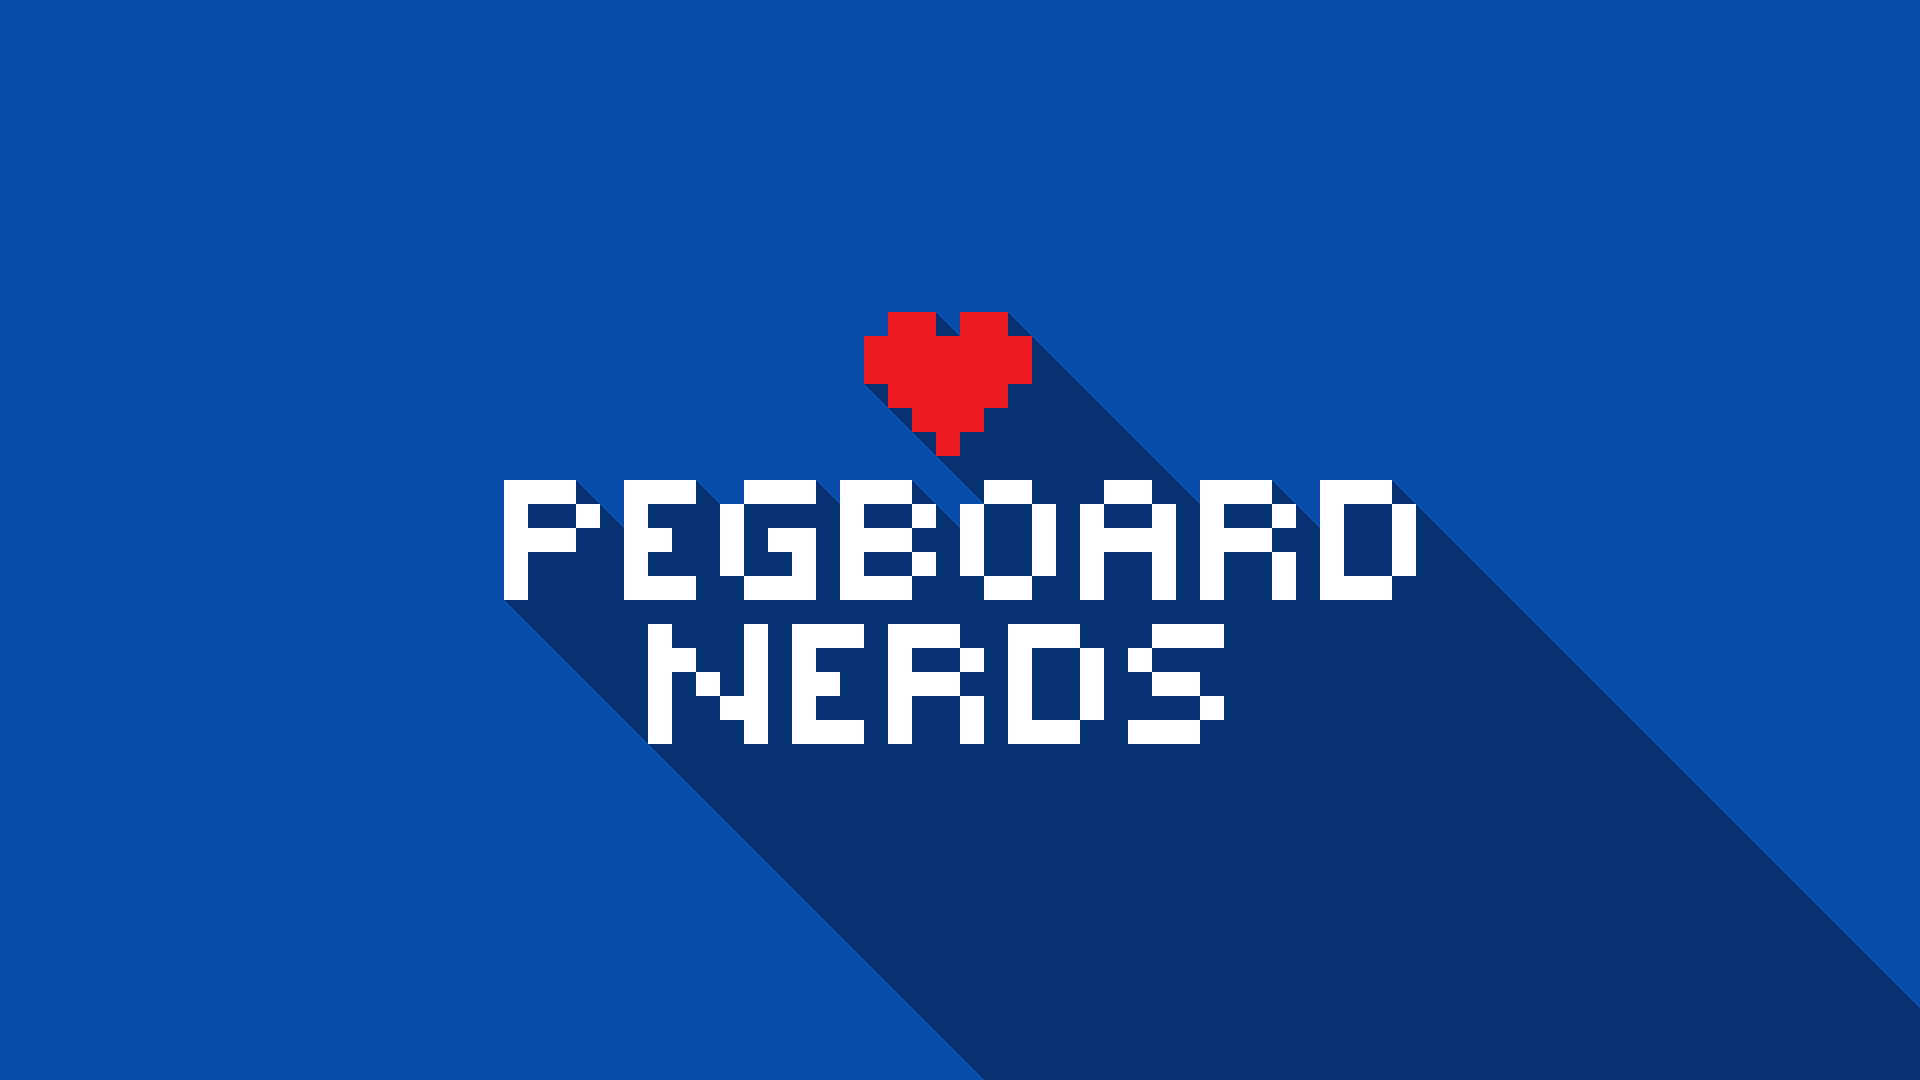 Res: 1920x1080, Minimal Pegboard Nerds Wallpaper by dsrange431 Minimal Pegboard Nerds  Wallpaper by dsrange431